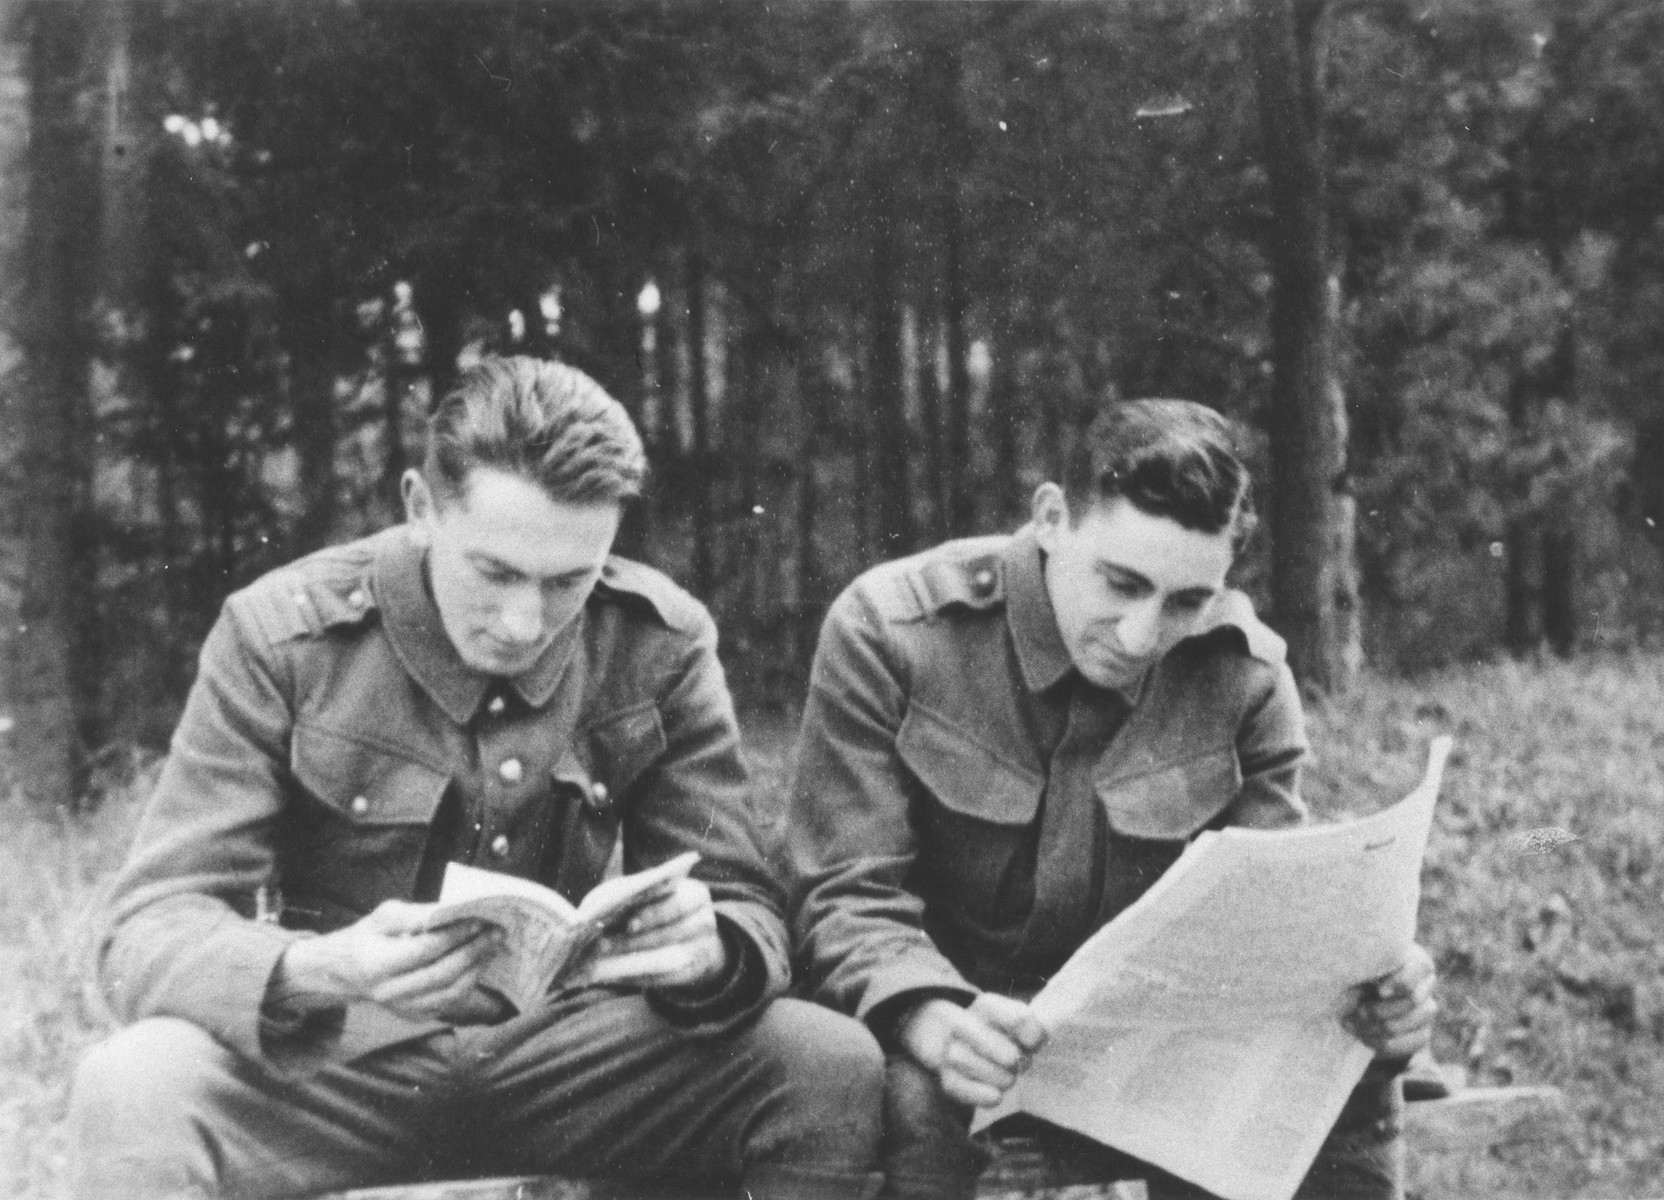 Two Jewish members of the Sixth Labor Battalion (VI Prapor) read outside at a Slovak labor camp.